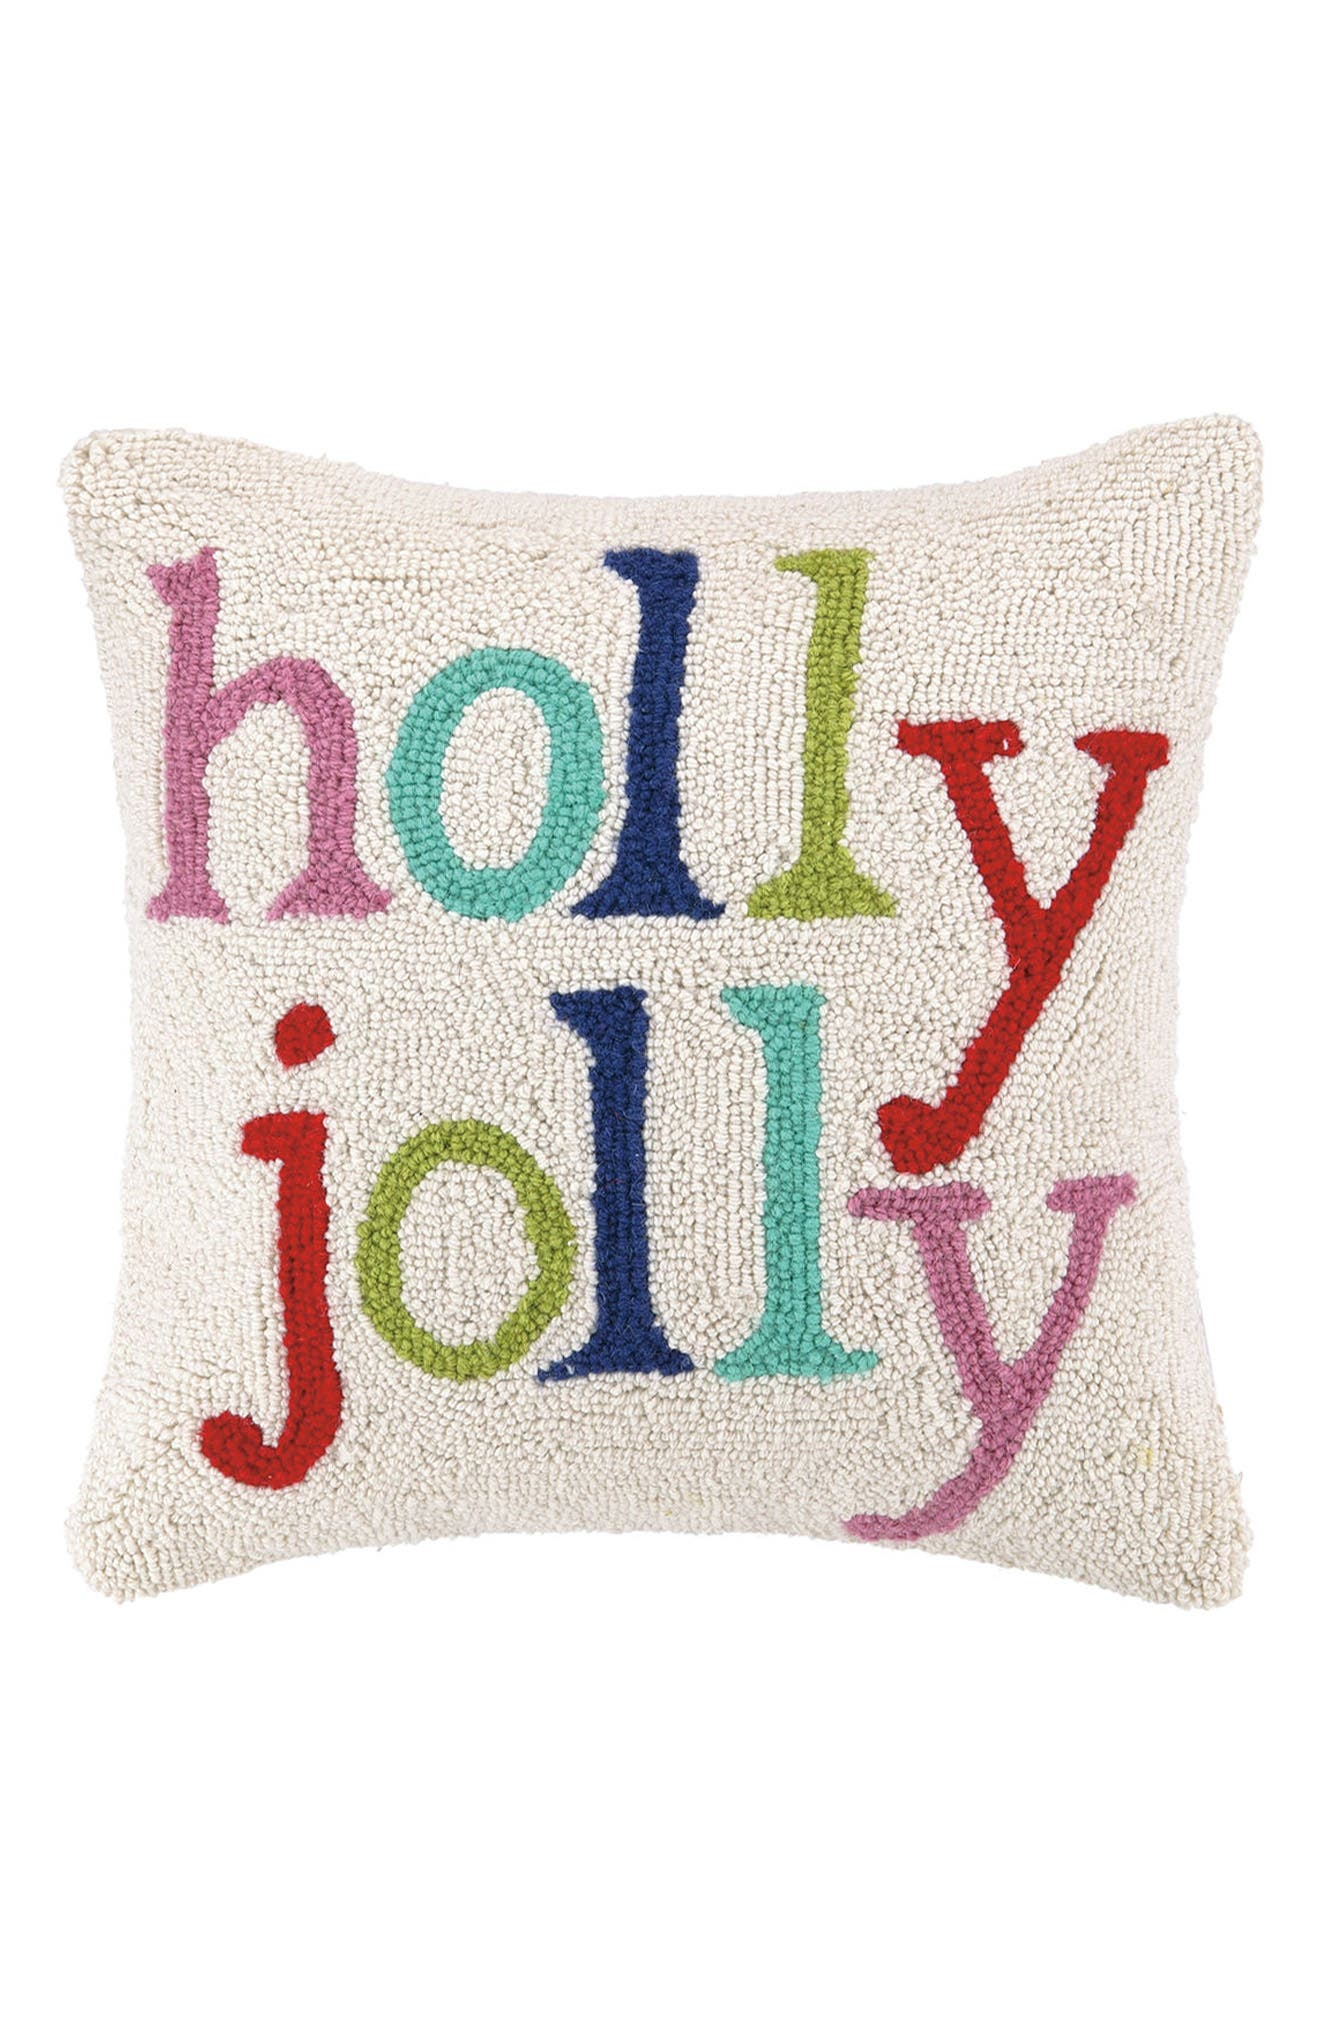 Main Image - Peking Handicraft Holly Jolly Hooked Accent Pillow